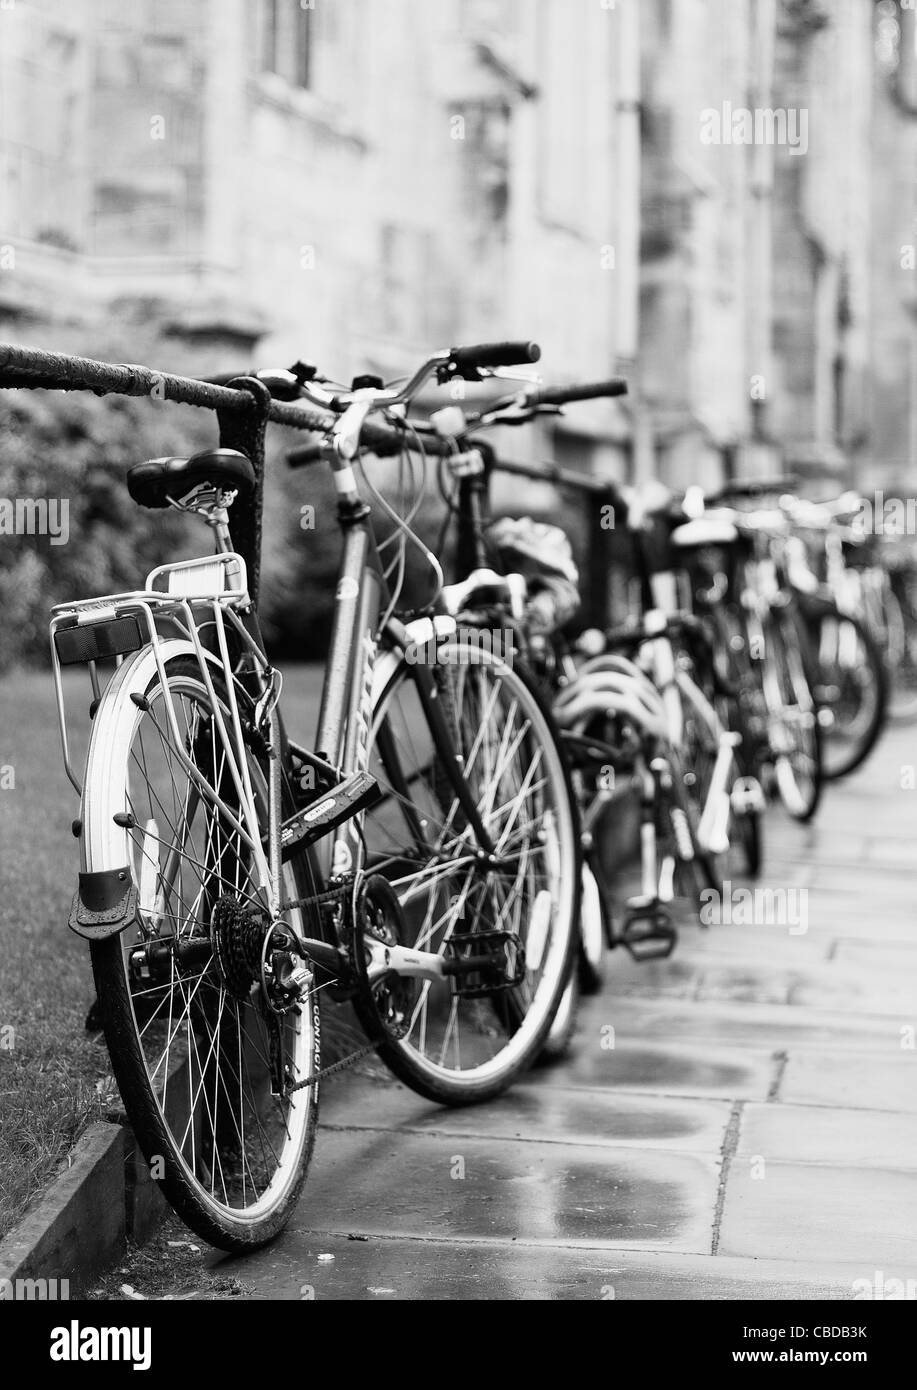 Row of parked bikes - Stock Image